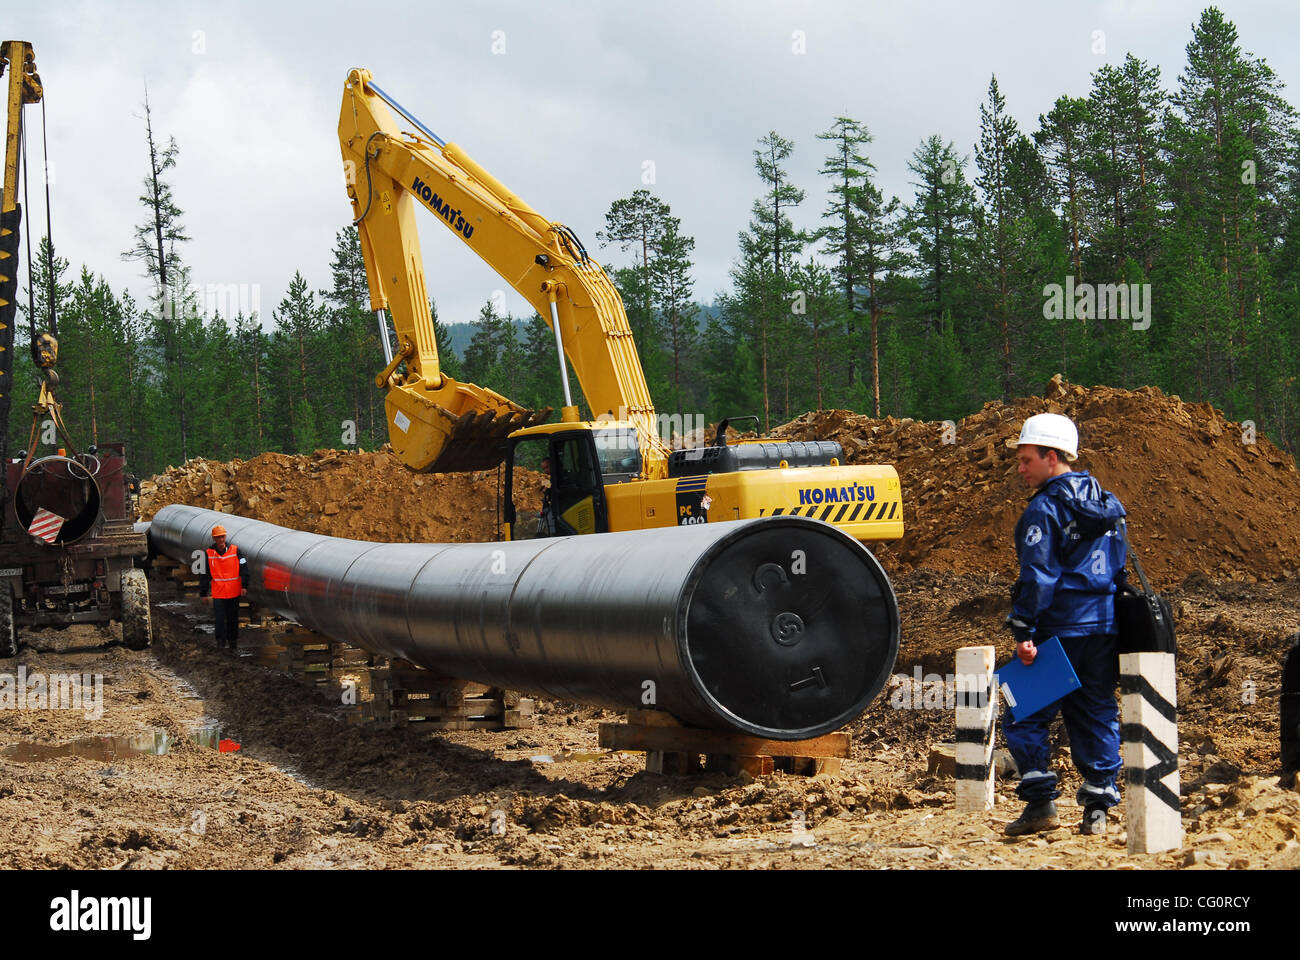 construction of oil pipeline east siberia pacific oceanthe ambitious east siberia pacific ocean oil pipeline managed by state run oil pipe operator